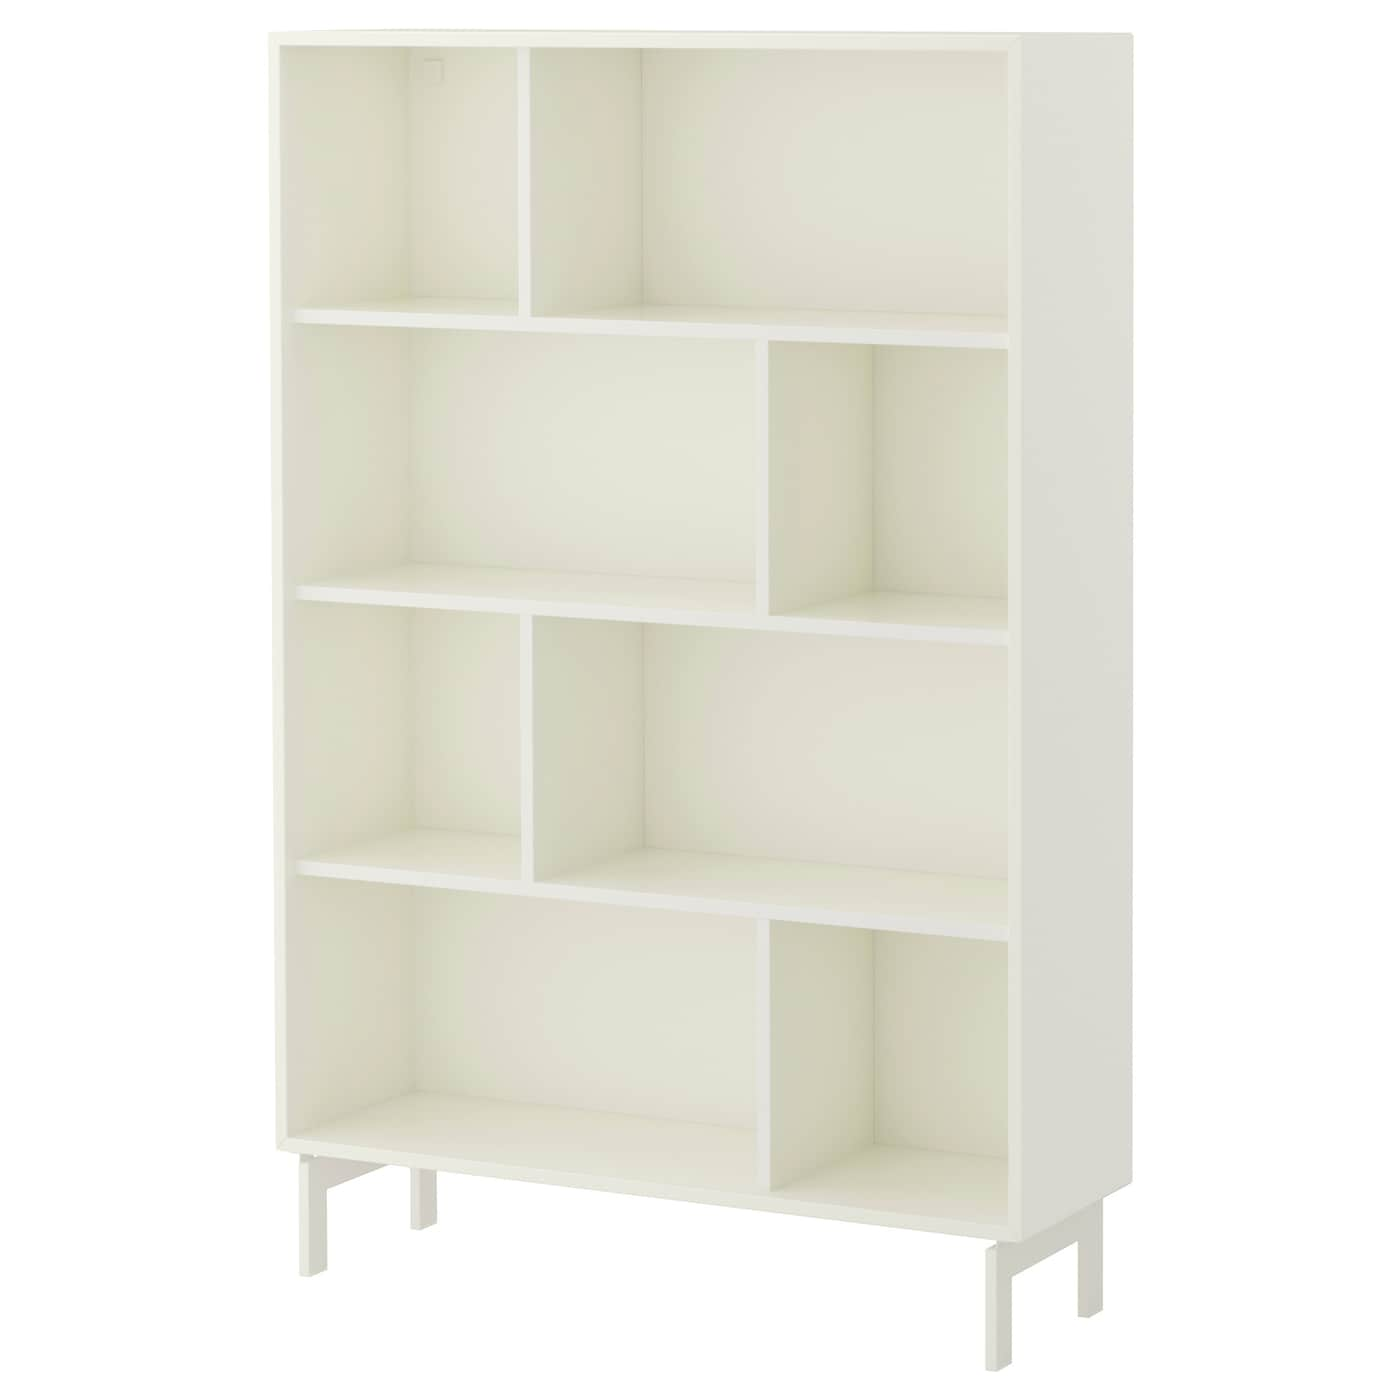 VALJE Shelf unit White 100×150 cm  IKEA